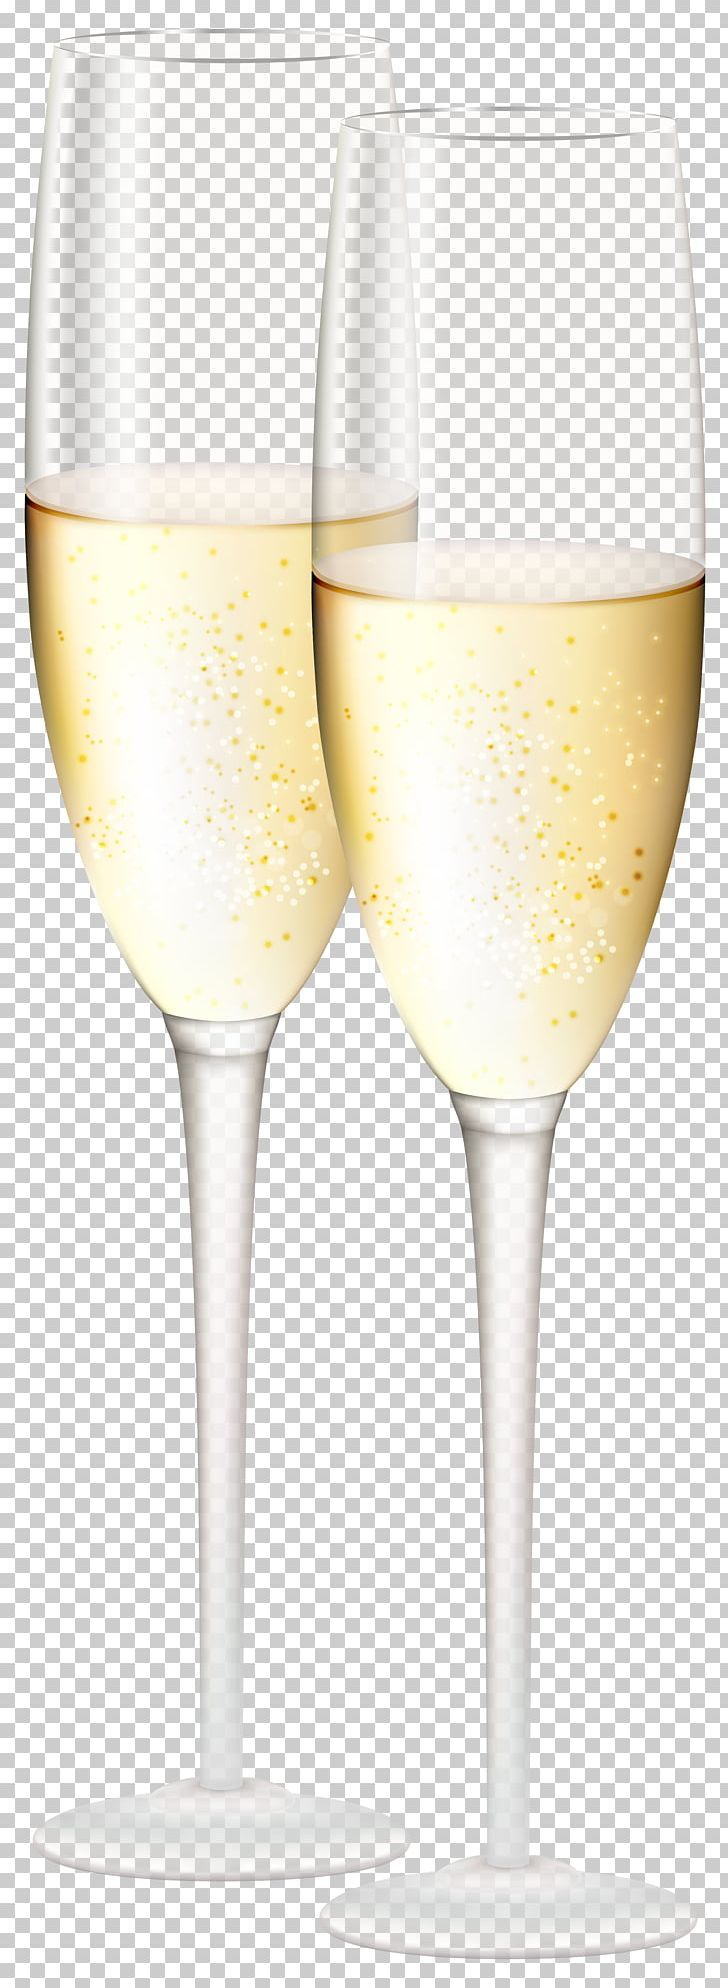 White Wine Champagne Glass Cocktail Wine Glass Png Beer Glass